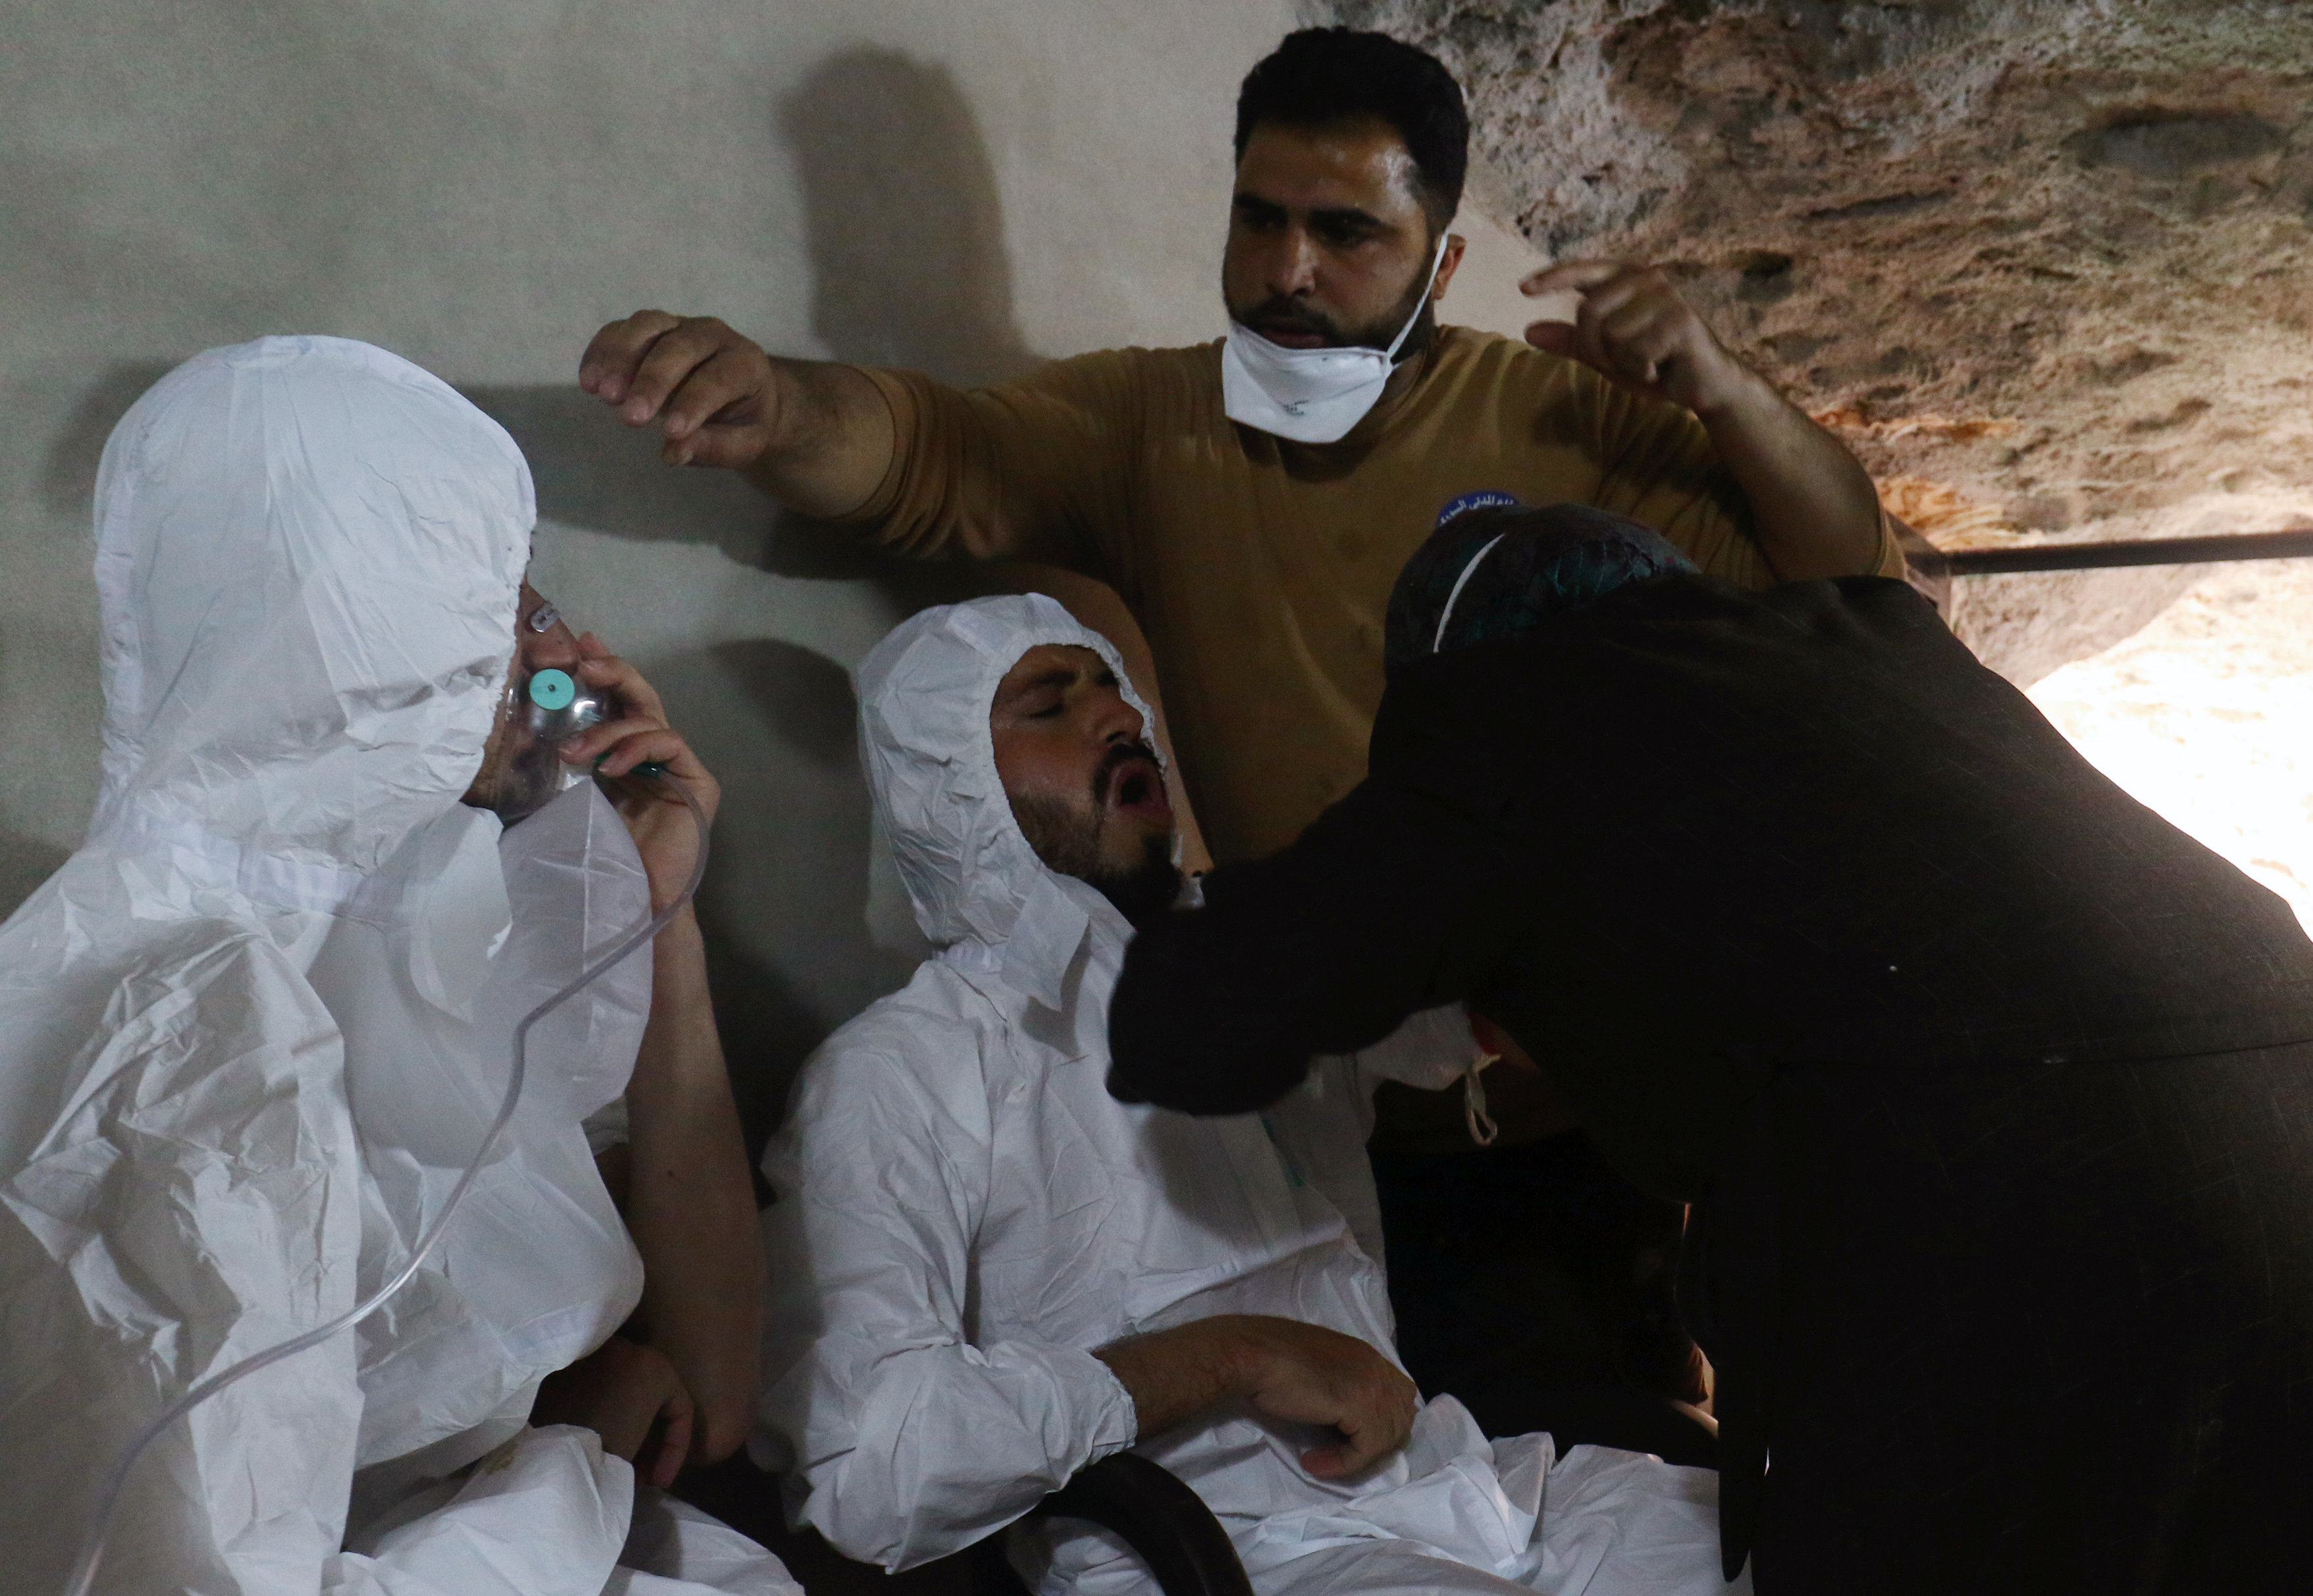 A man breathes through an oxygen mask as another one receives treatments, after what rescue workers described as a suspected gas attack in the town of Khan Sheikhoun in rebel-held Idlib, Syria on April 4, 2017. (REUTERS/Ammar Abdullah)